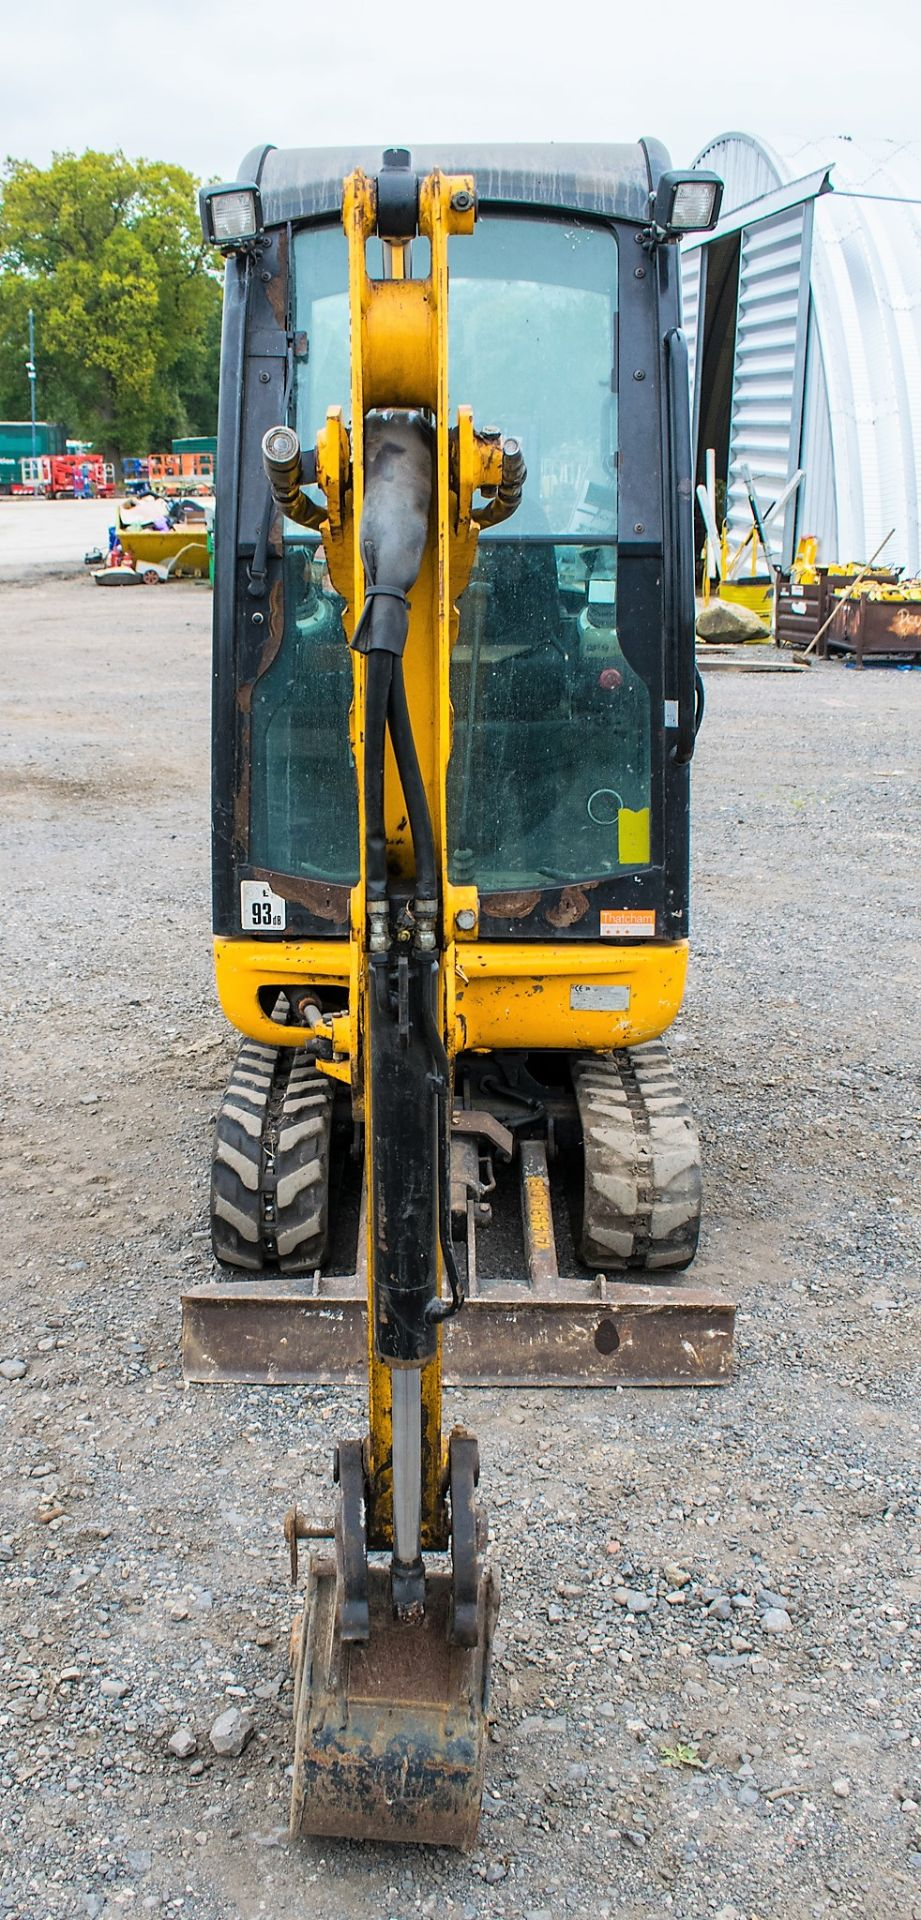 JCB 8016 1.6 tonne rubber tracked excavator  Year: 2015 S/N: 1733 Recorded Hours: 1861 A669405 - Image 5 of 20